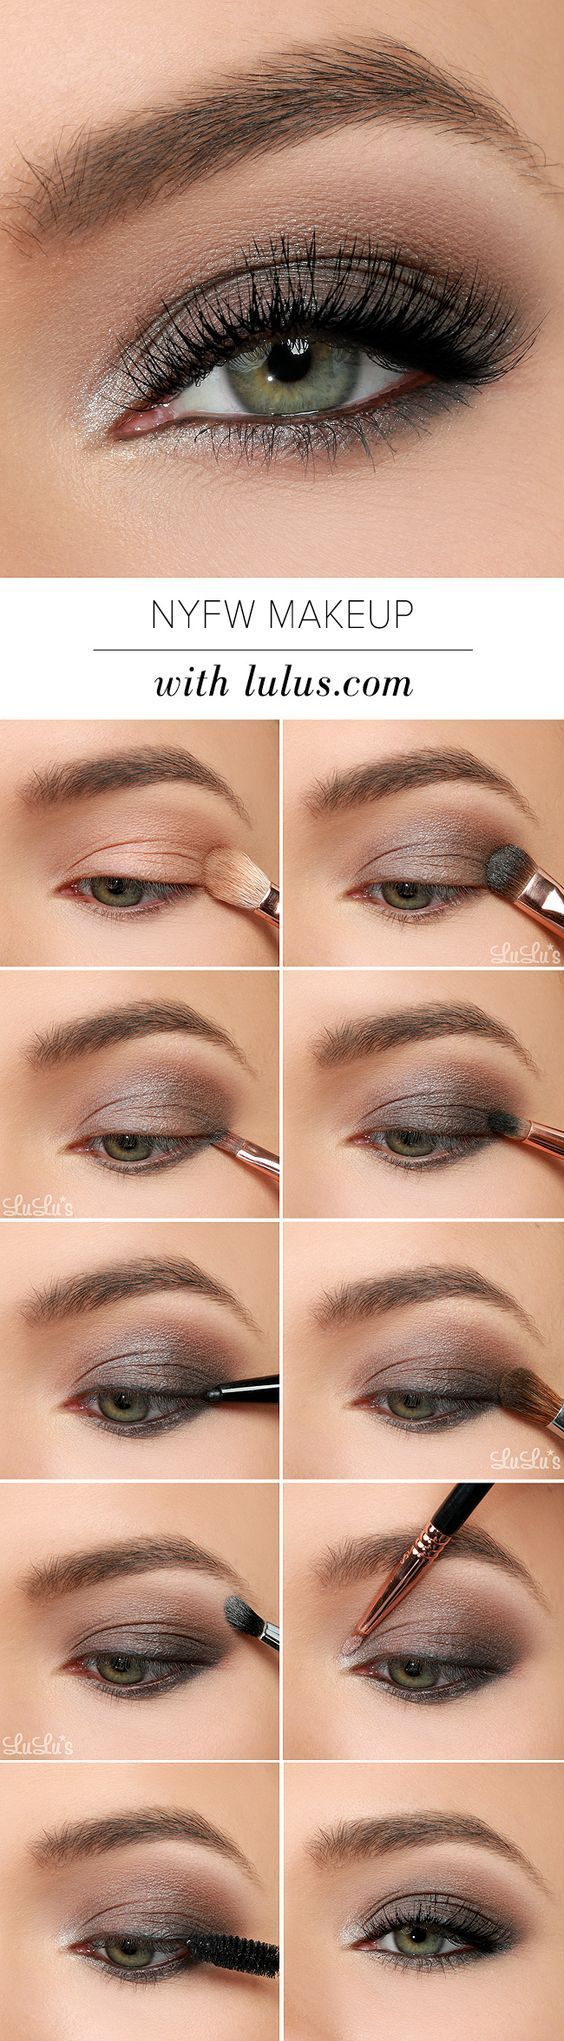 15 easy step by step smokey eye makeup tutorials for beginners step by step smokey eye makeup tutorials baditri Gallery